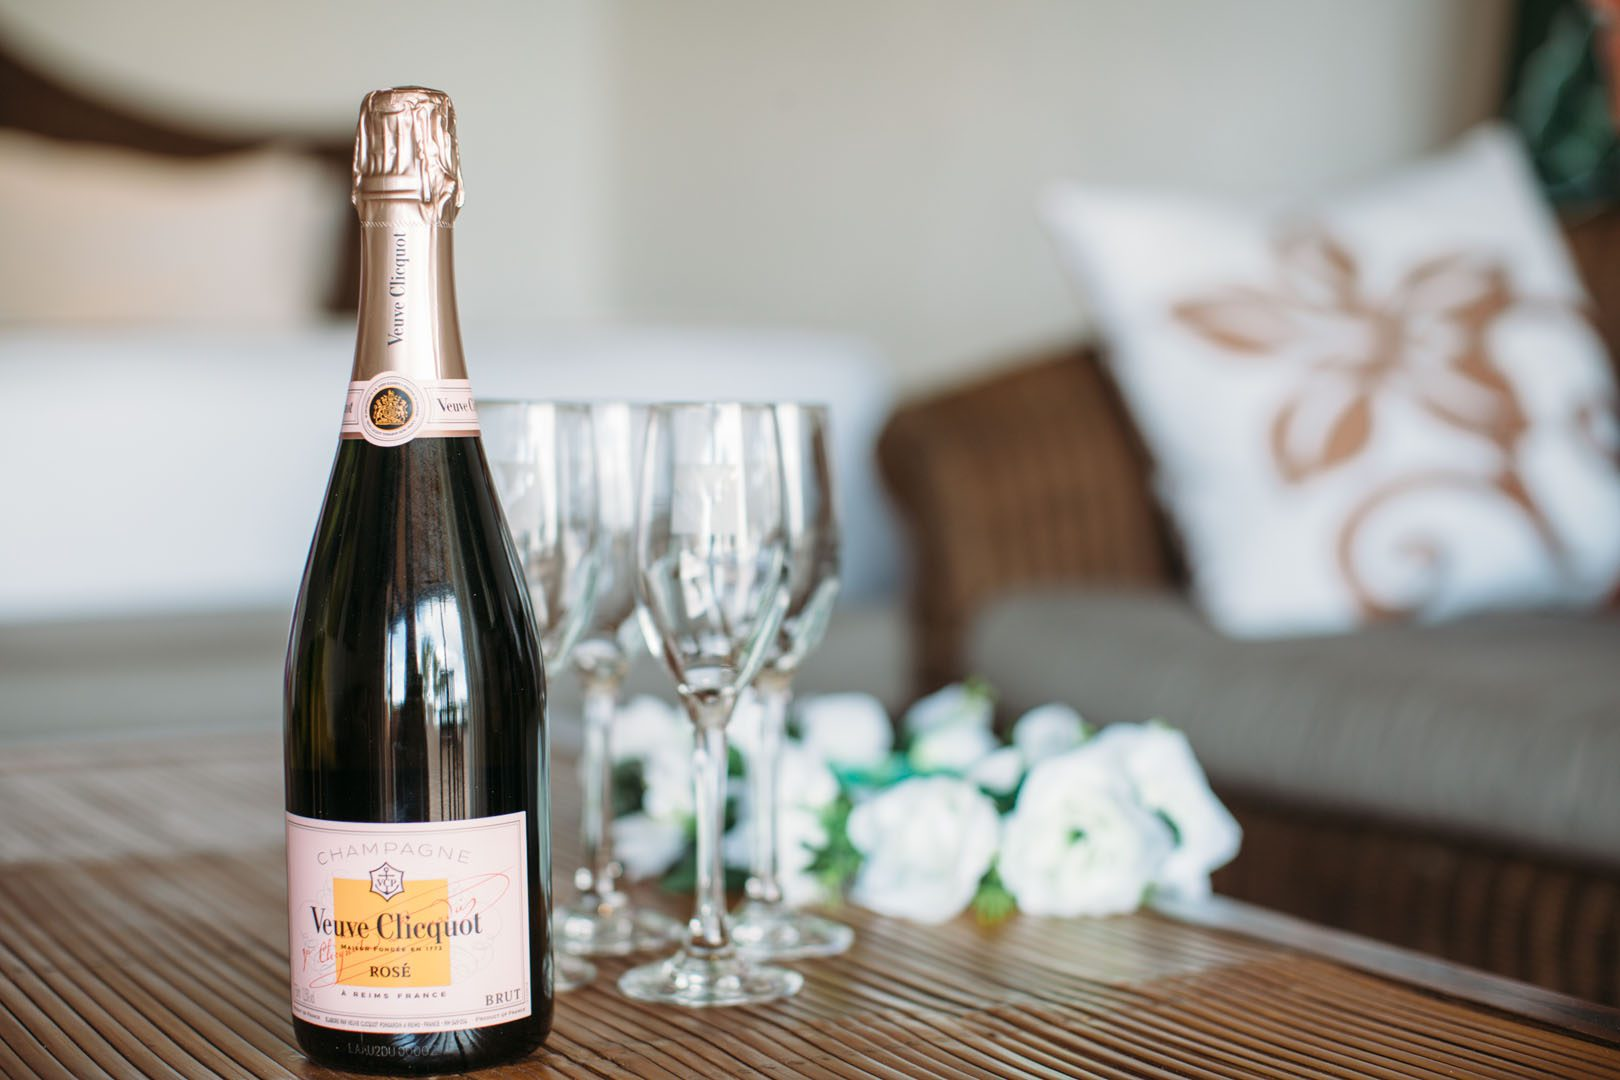 A bottle of champagne placed on a table with four glasses and white roses in the background as a sign of celebration